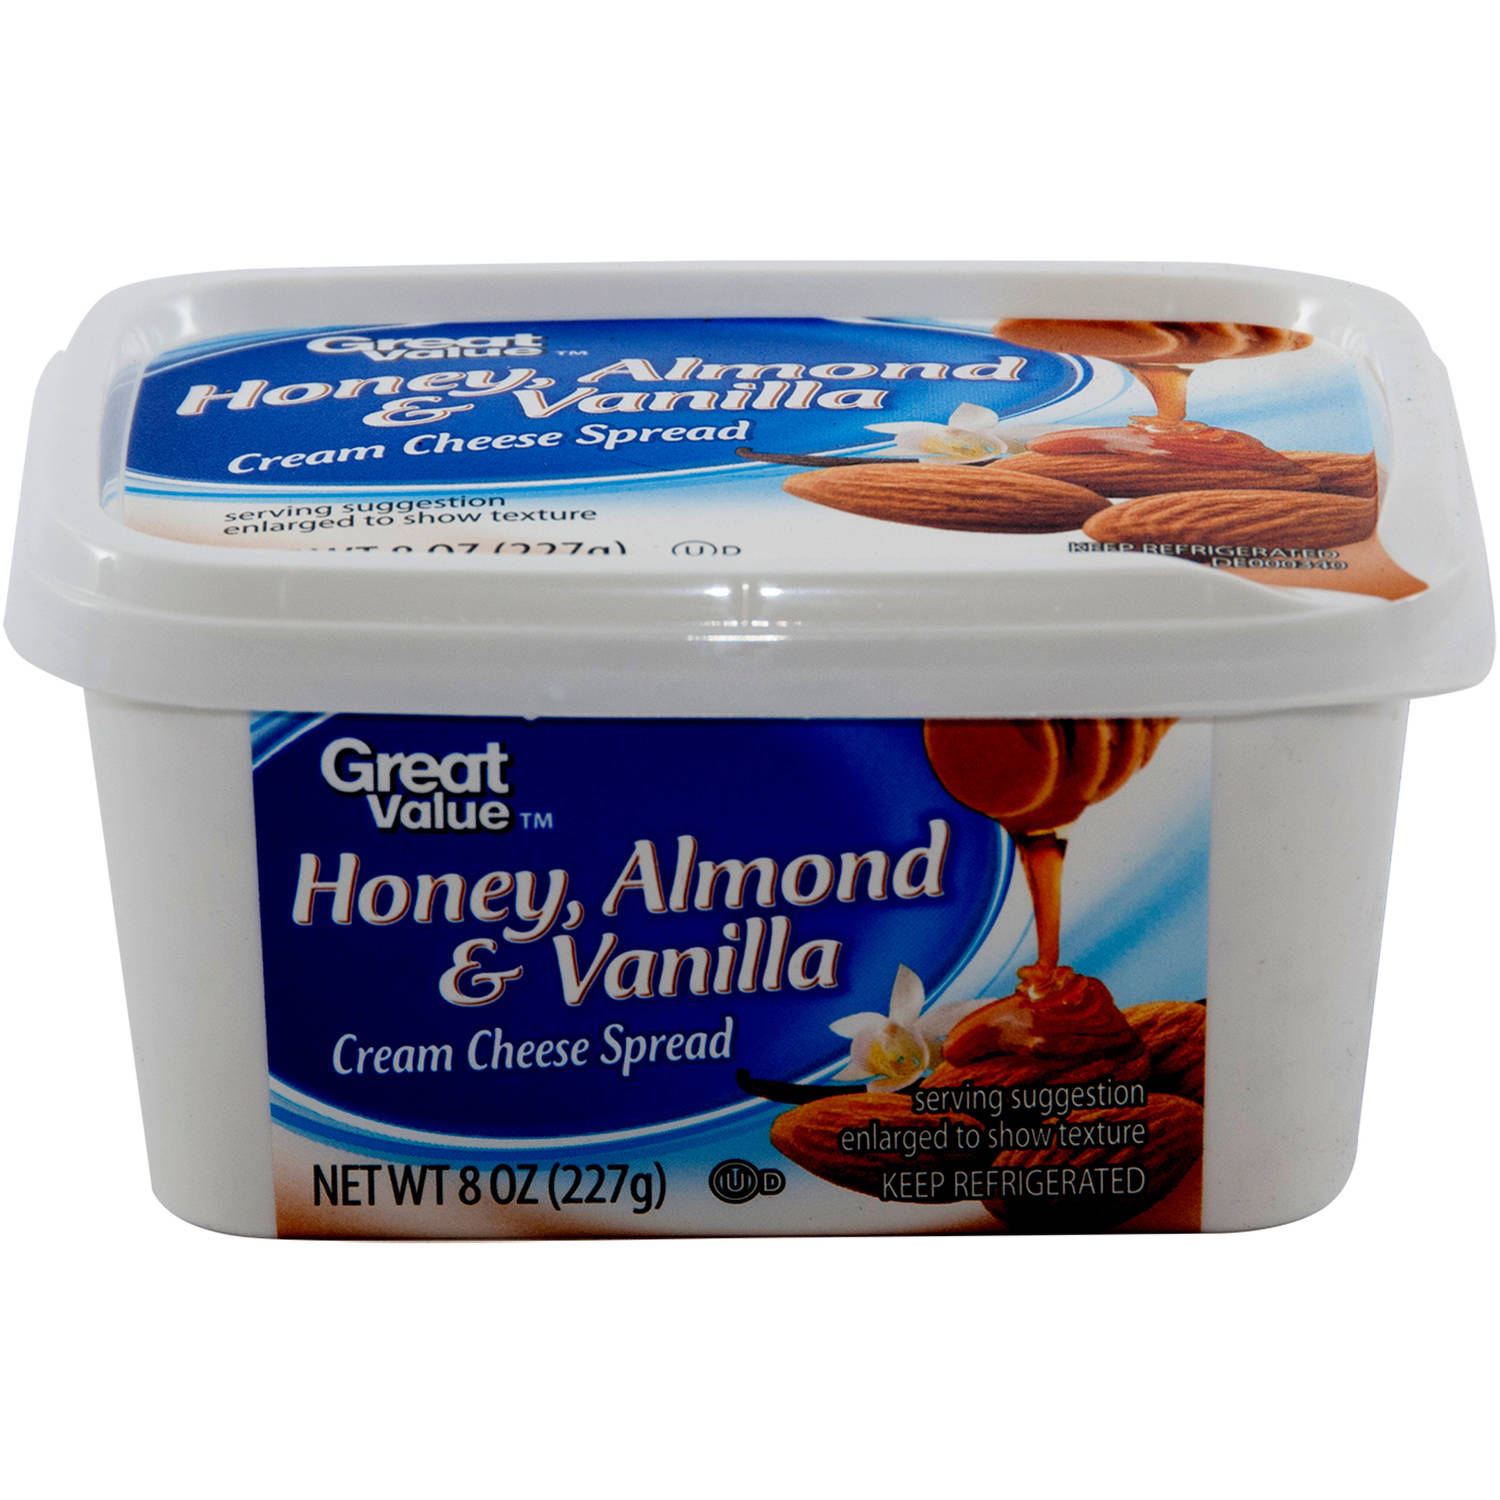 Great Value Honey Almond & Vanilla Cream Cheese Spread, 8 oz